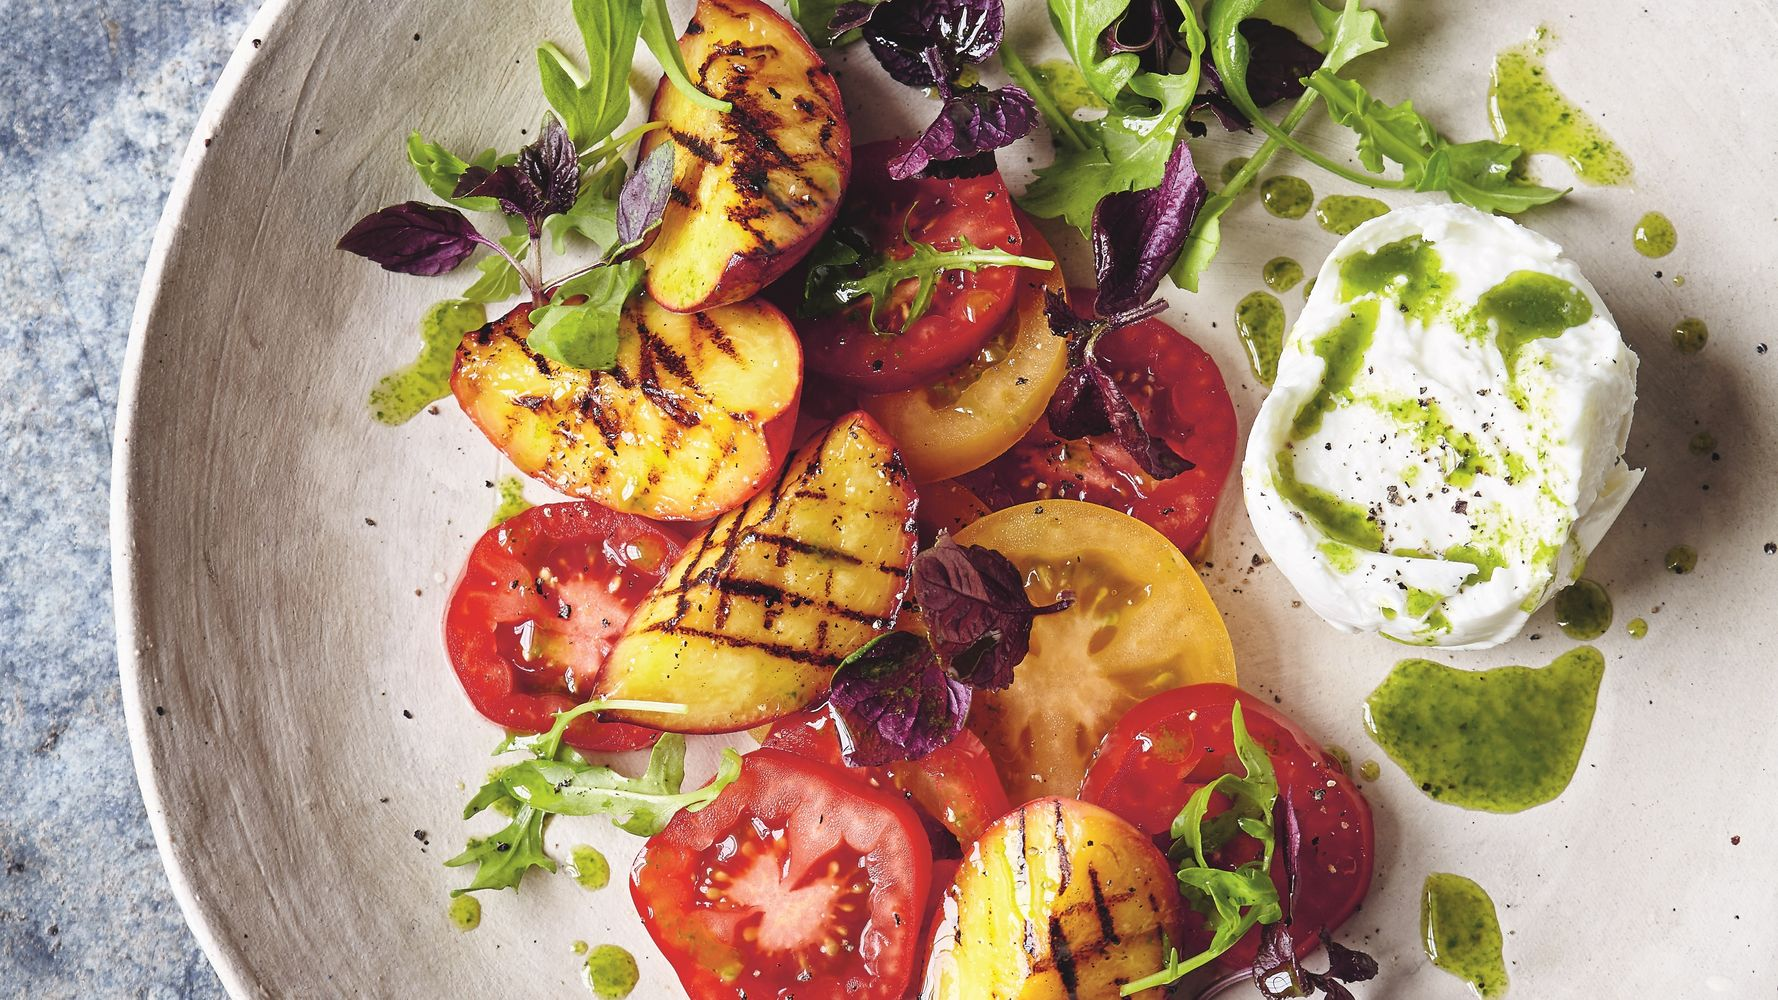 Salad Doesn't Have To Be Boring With These 3 Tasty Recipes